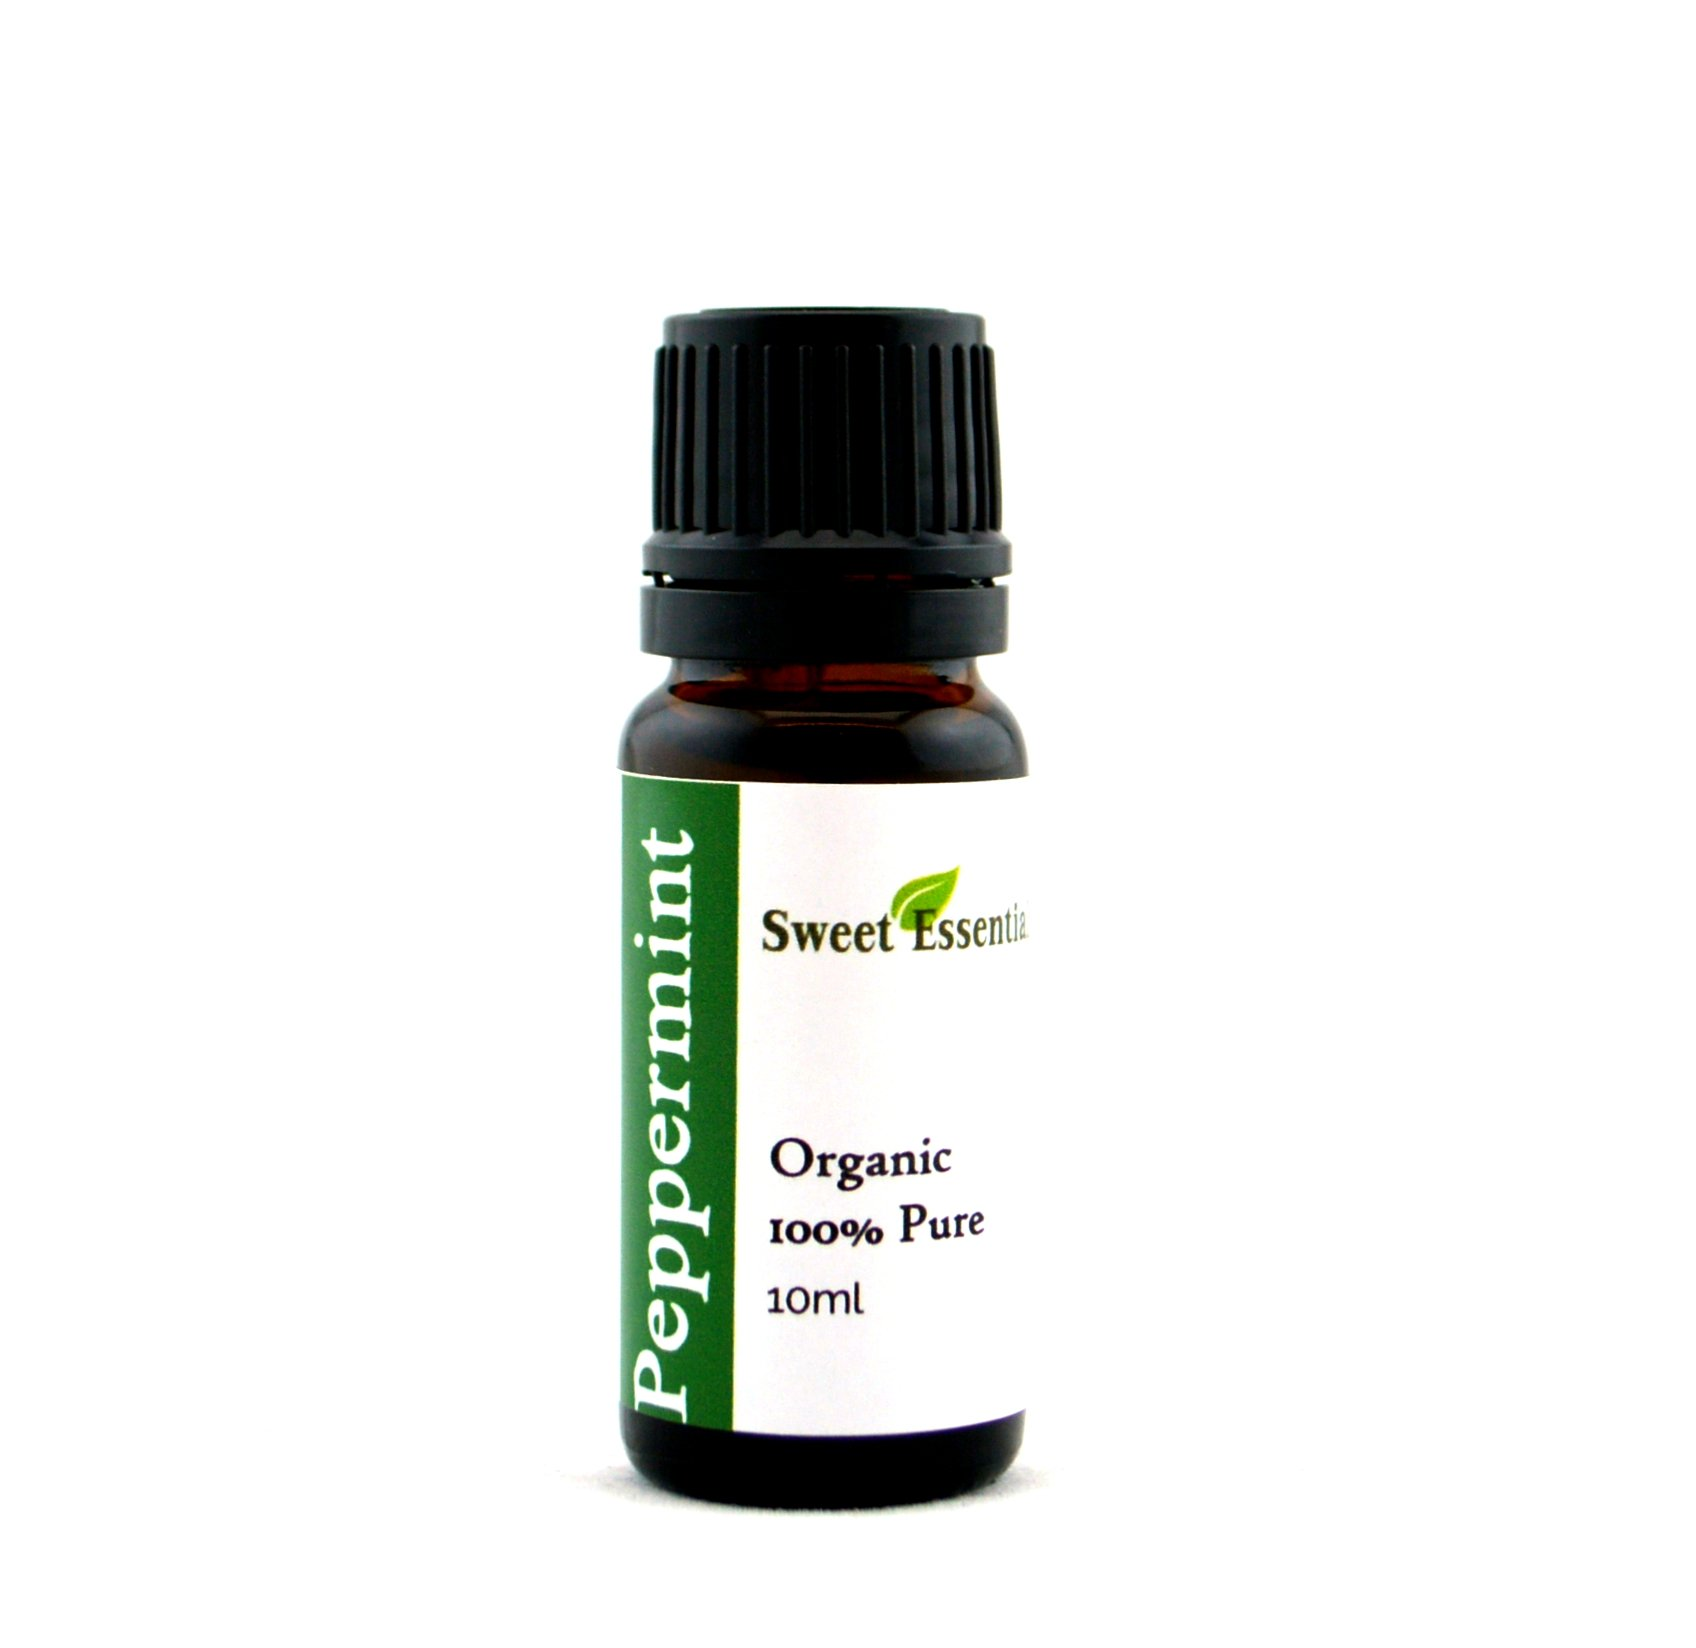 Premium Organic Peppermint Essential Oil | Imported From France - 100% Pure | Undiluted Therapeutic Grade | Aromatherapy | Perfect for Diffusers | Mentha Piperita (10ml)